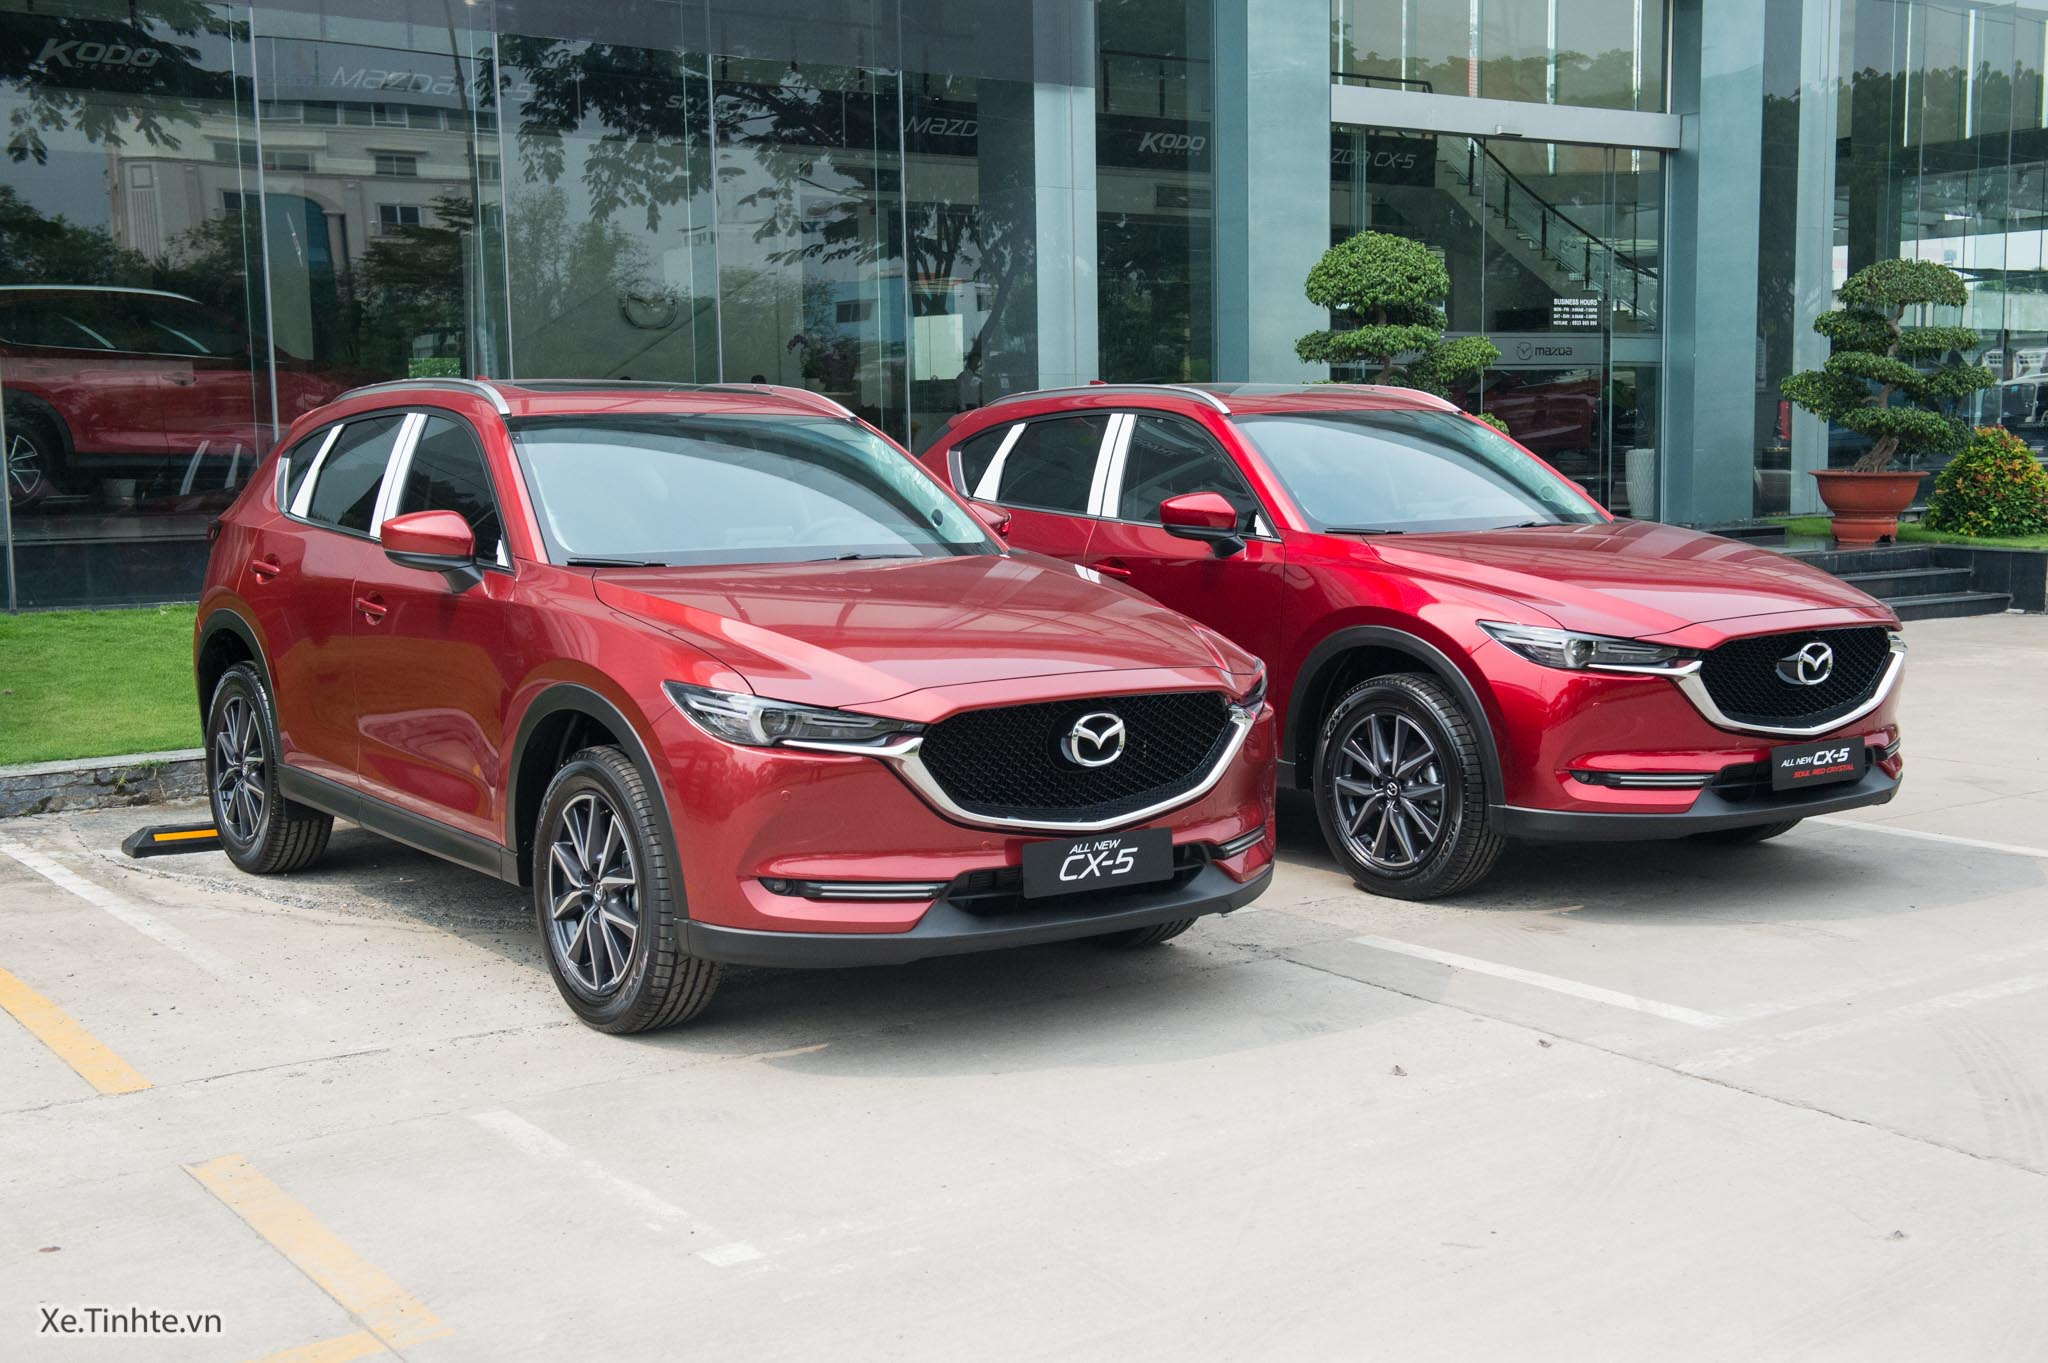 Mazda_Soul Red Crystal_Xe.tinhte.vn-7927.jpg